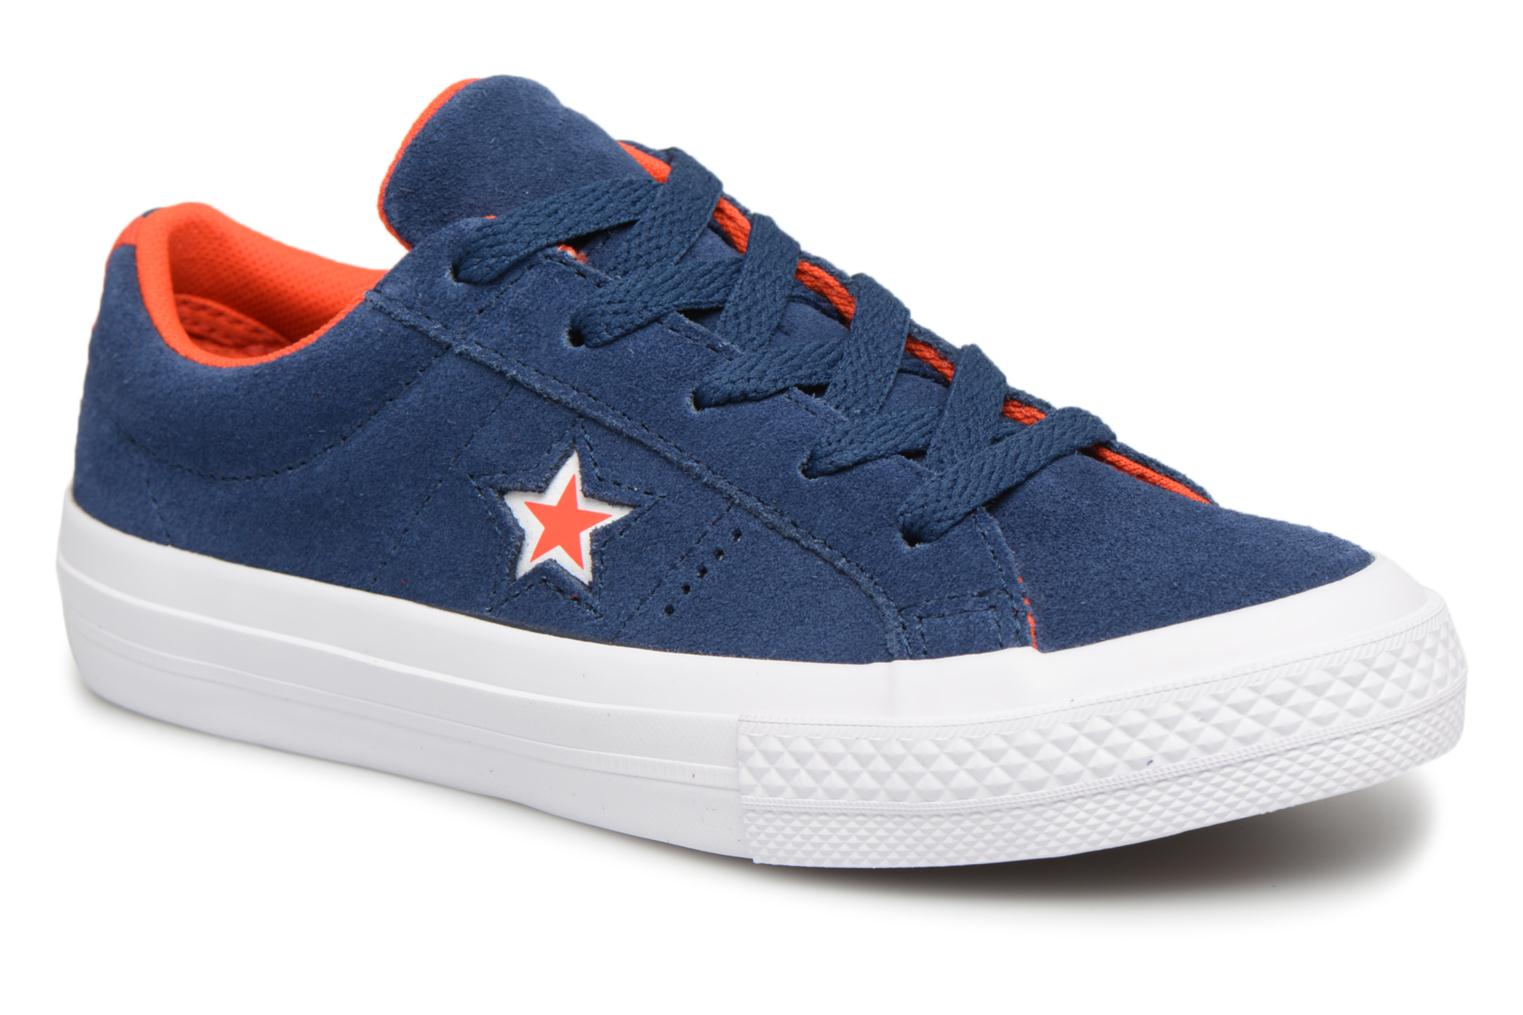 Sneakers One Star Ox Molded Varsity Star by ConverseConverseBlauwPaar schoenen - Sneakers88875527554234Nubuck